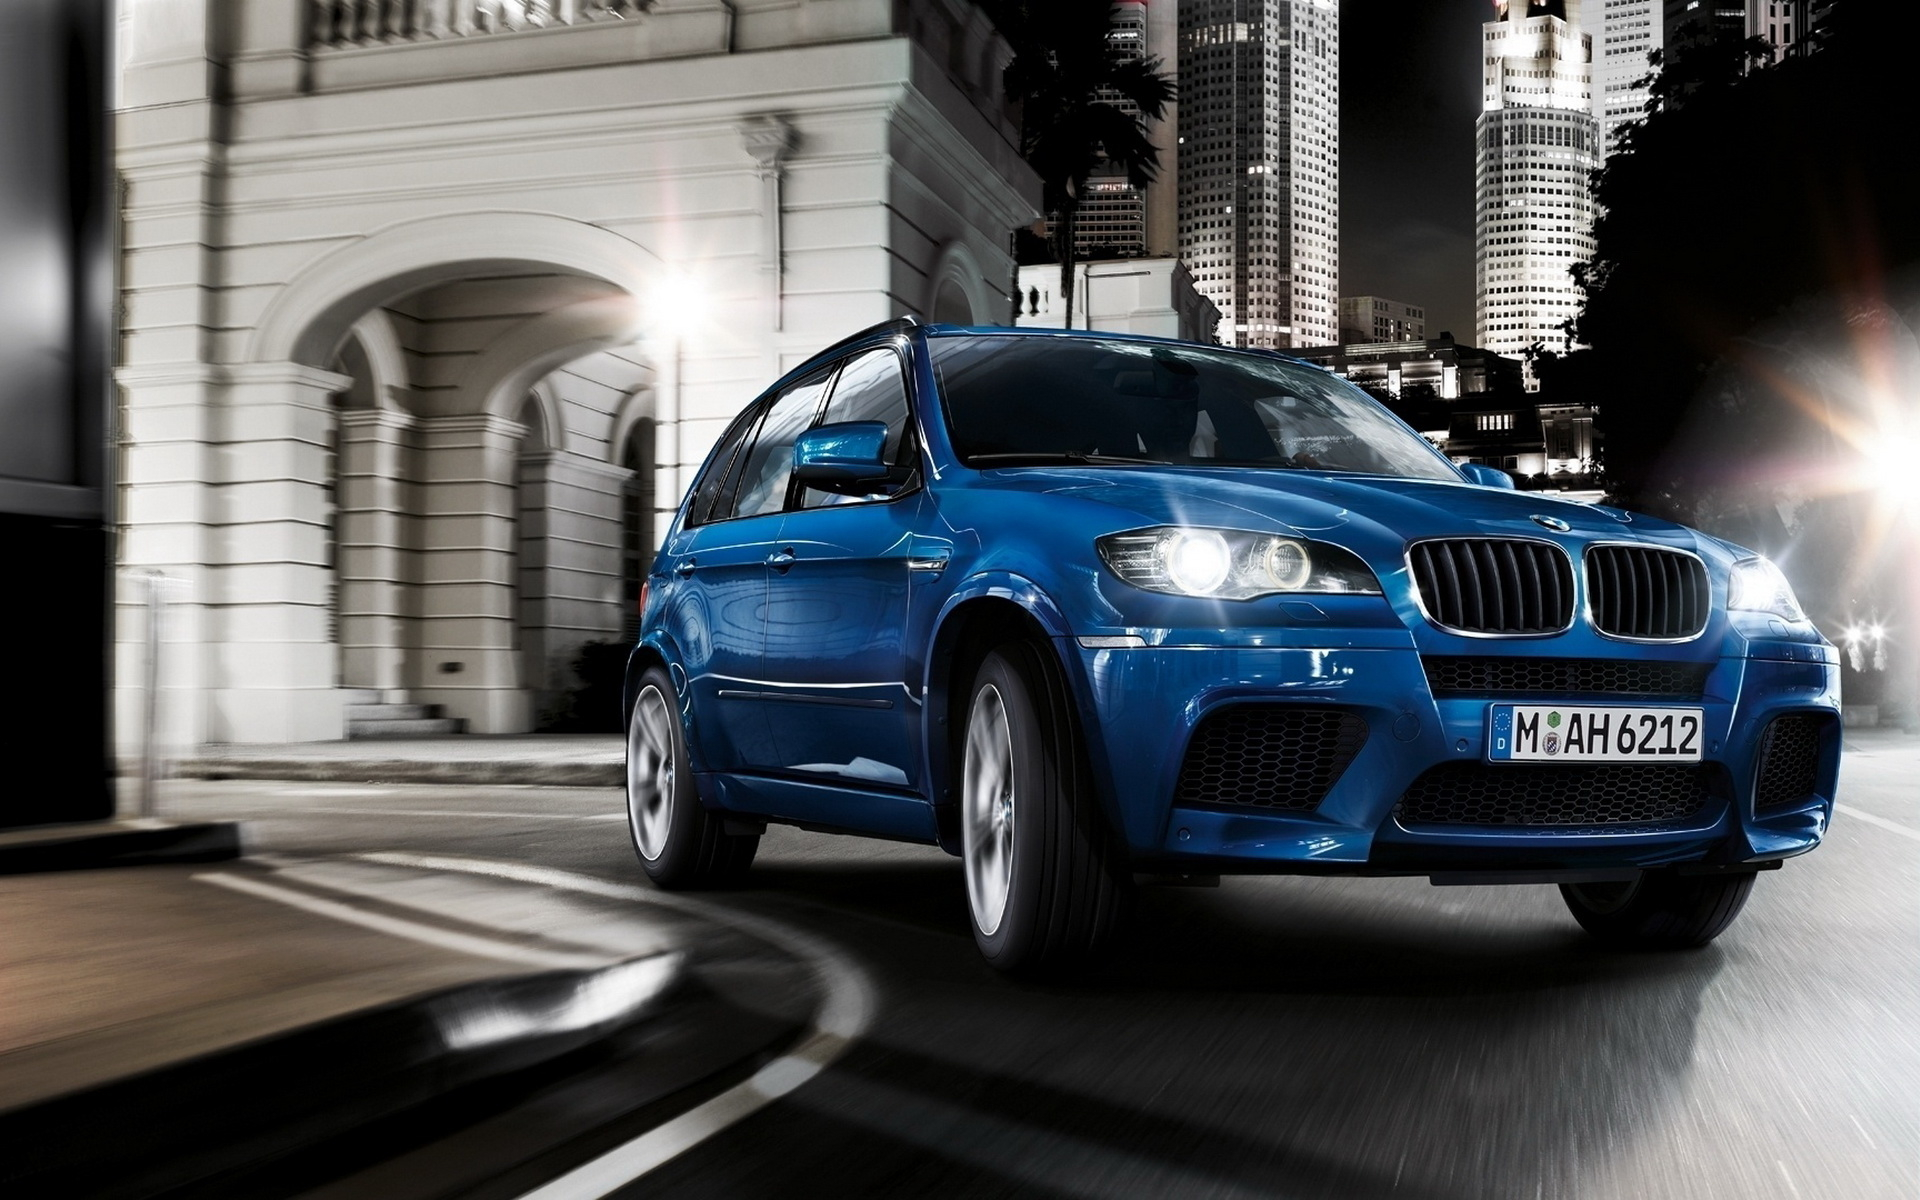 Dubai Girl Hd Wallpaper Bmw X3 Wallpapers And Images Wallpapers Pictures Photos